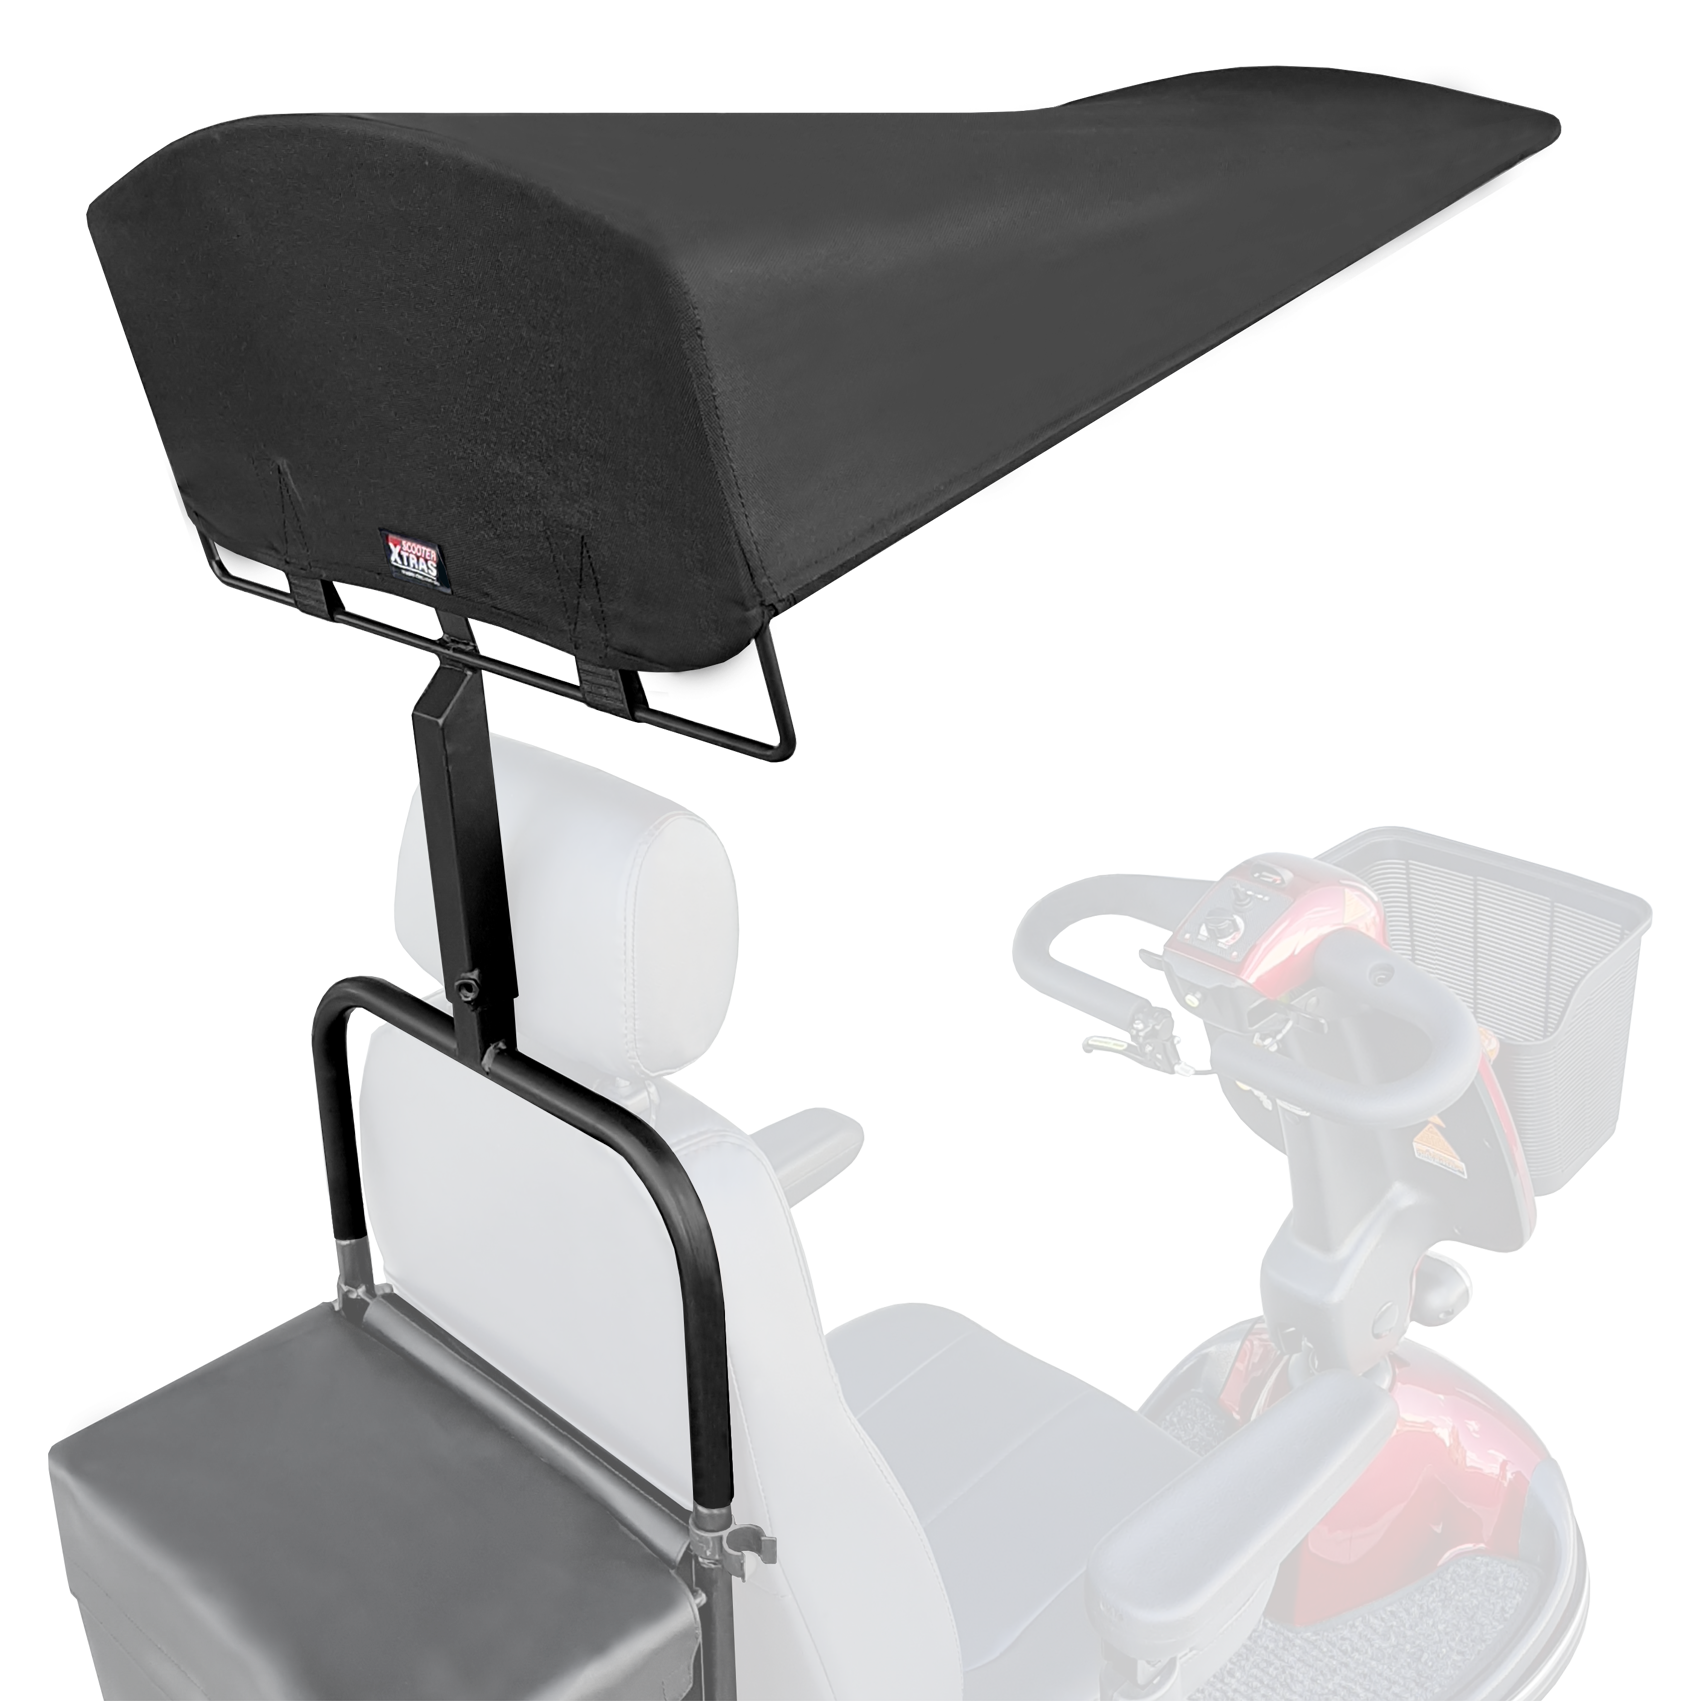 STANDARD SUN CANOPY TO SUIT SMALL TO MEDIUM SCOOTERS